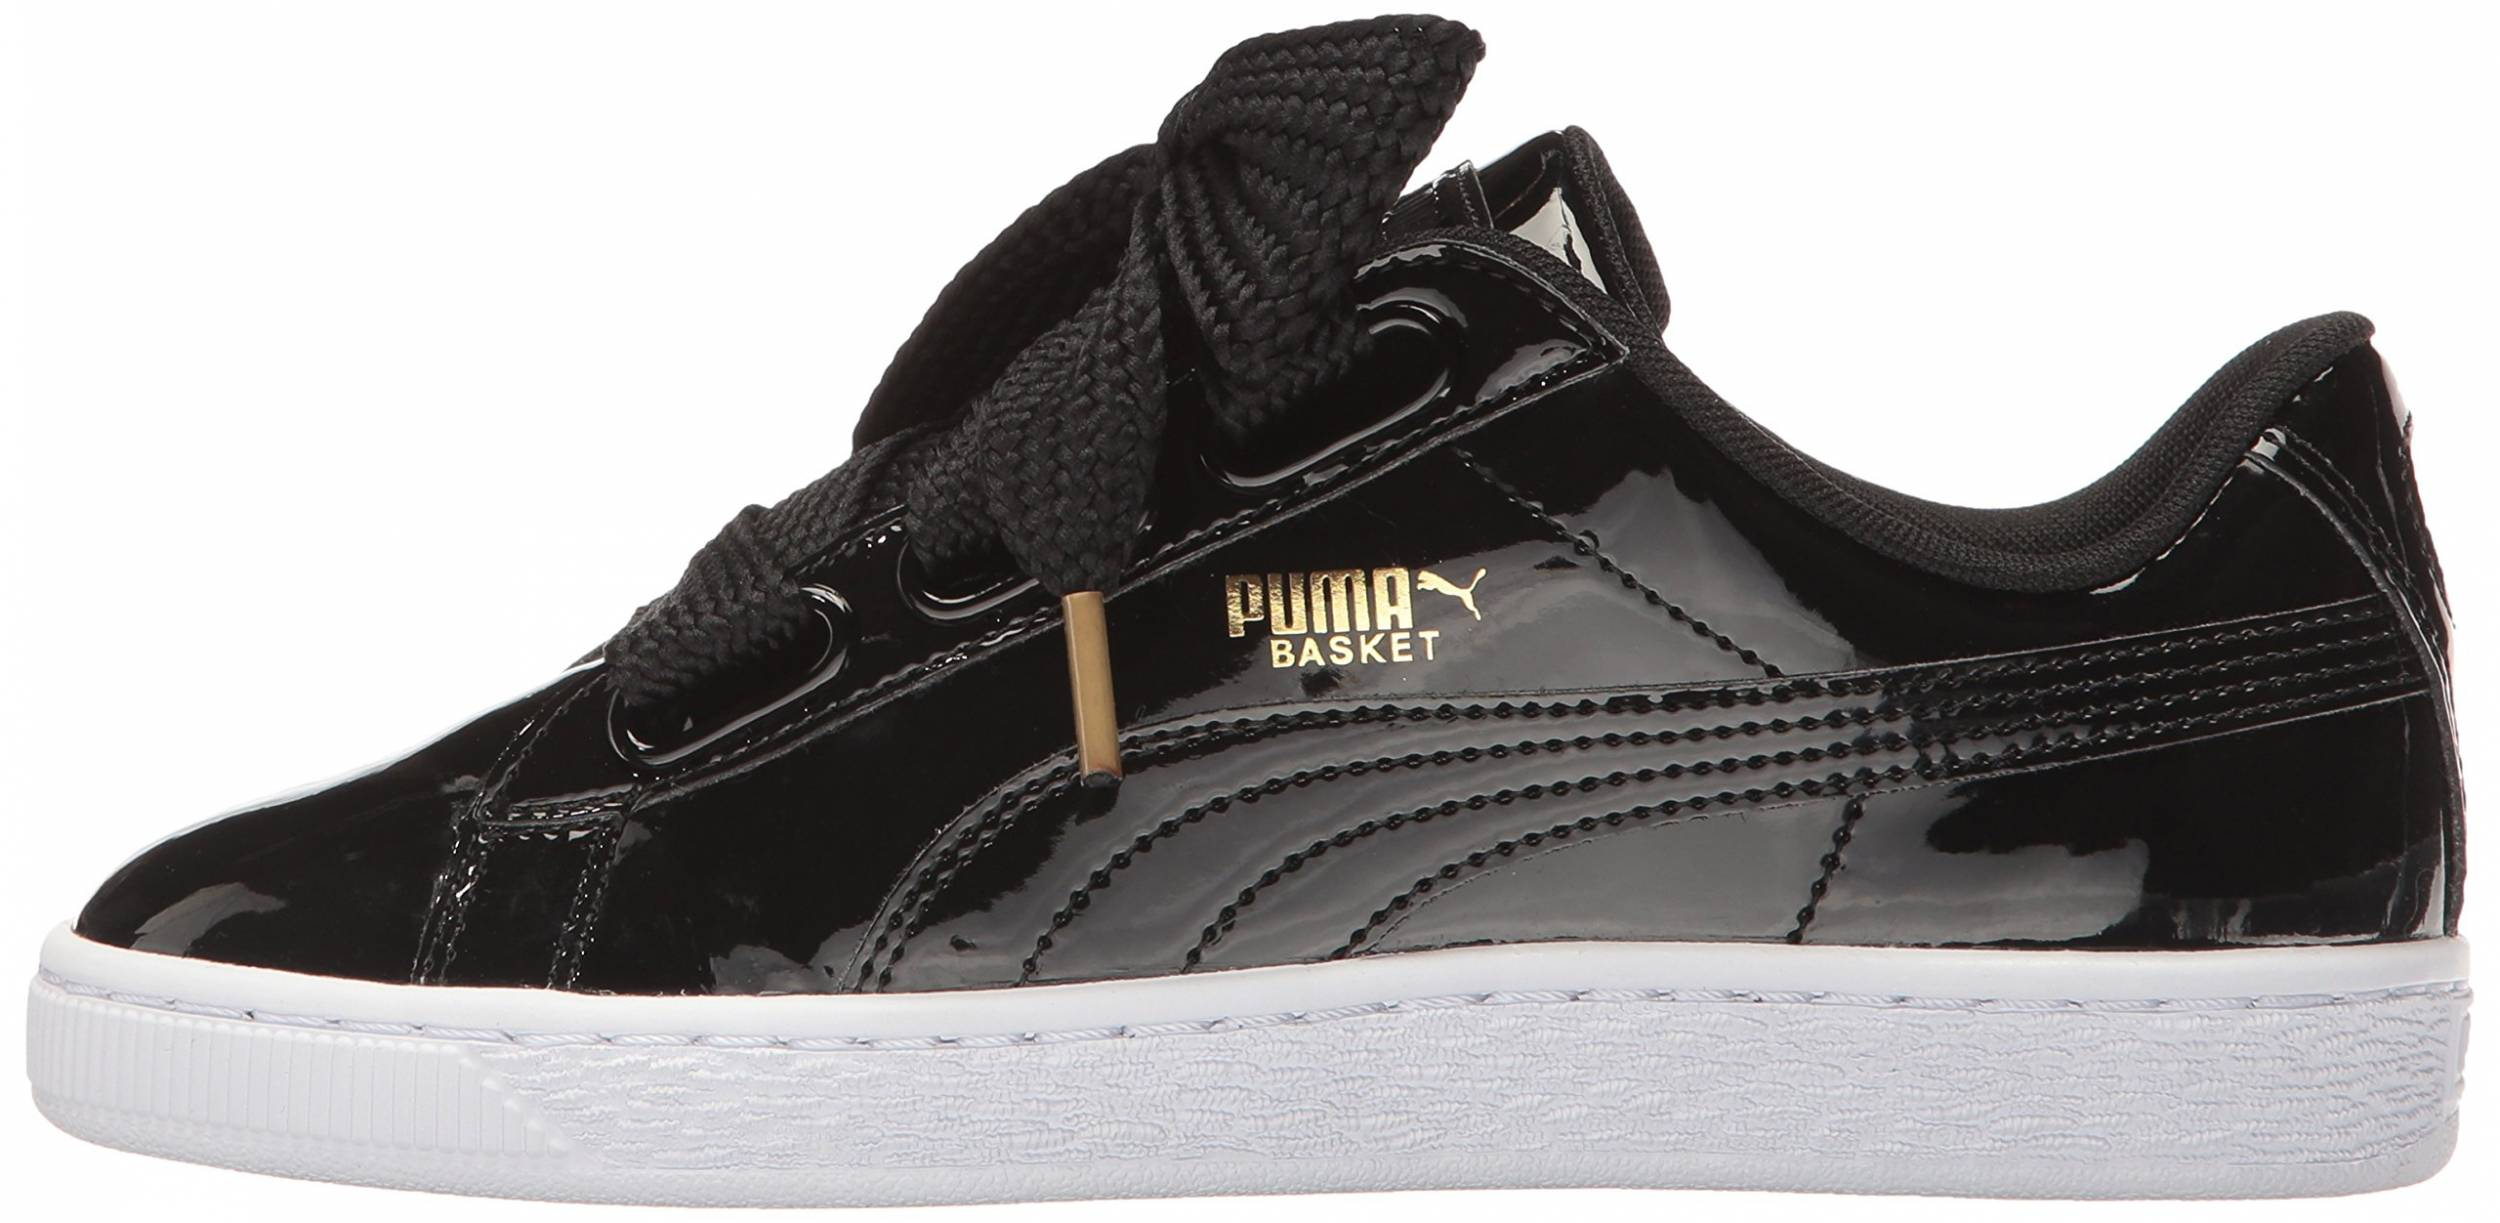 Puma Basket Heart Patent sneakers in 6 colors (only $55) | RunRepeat